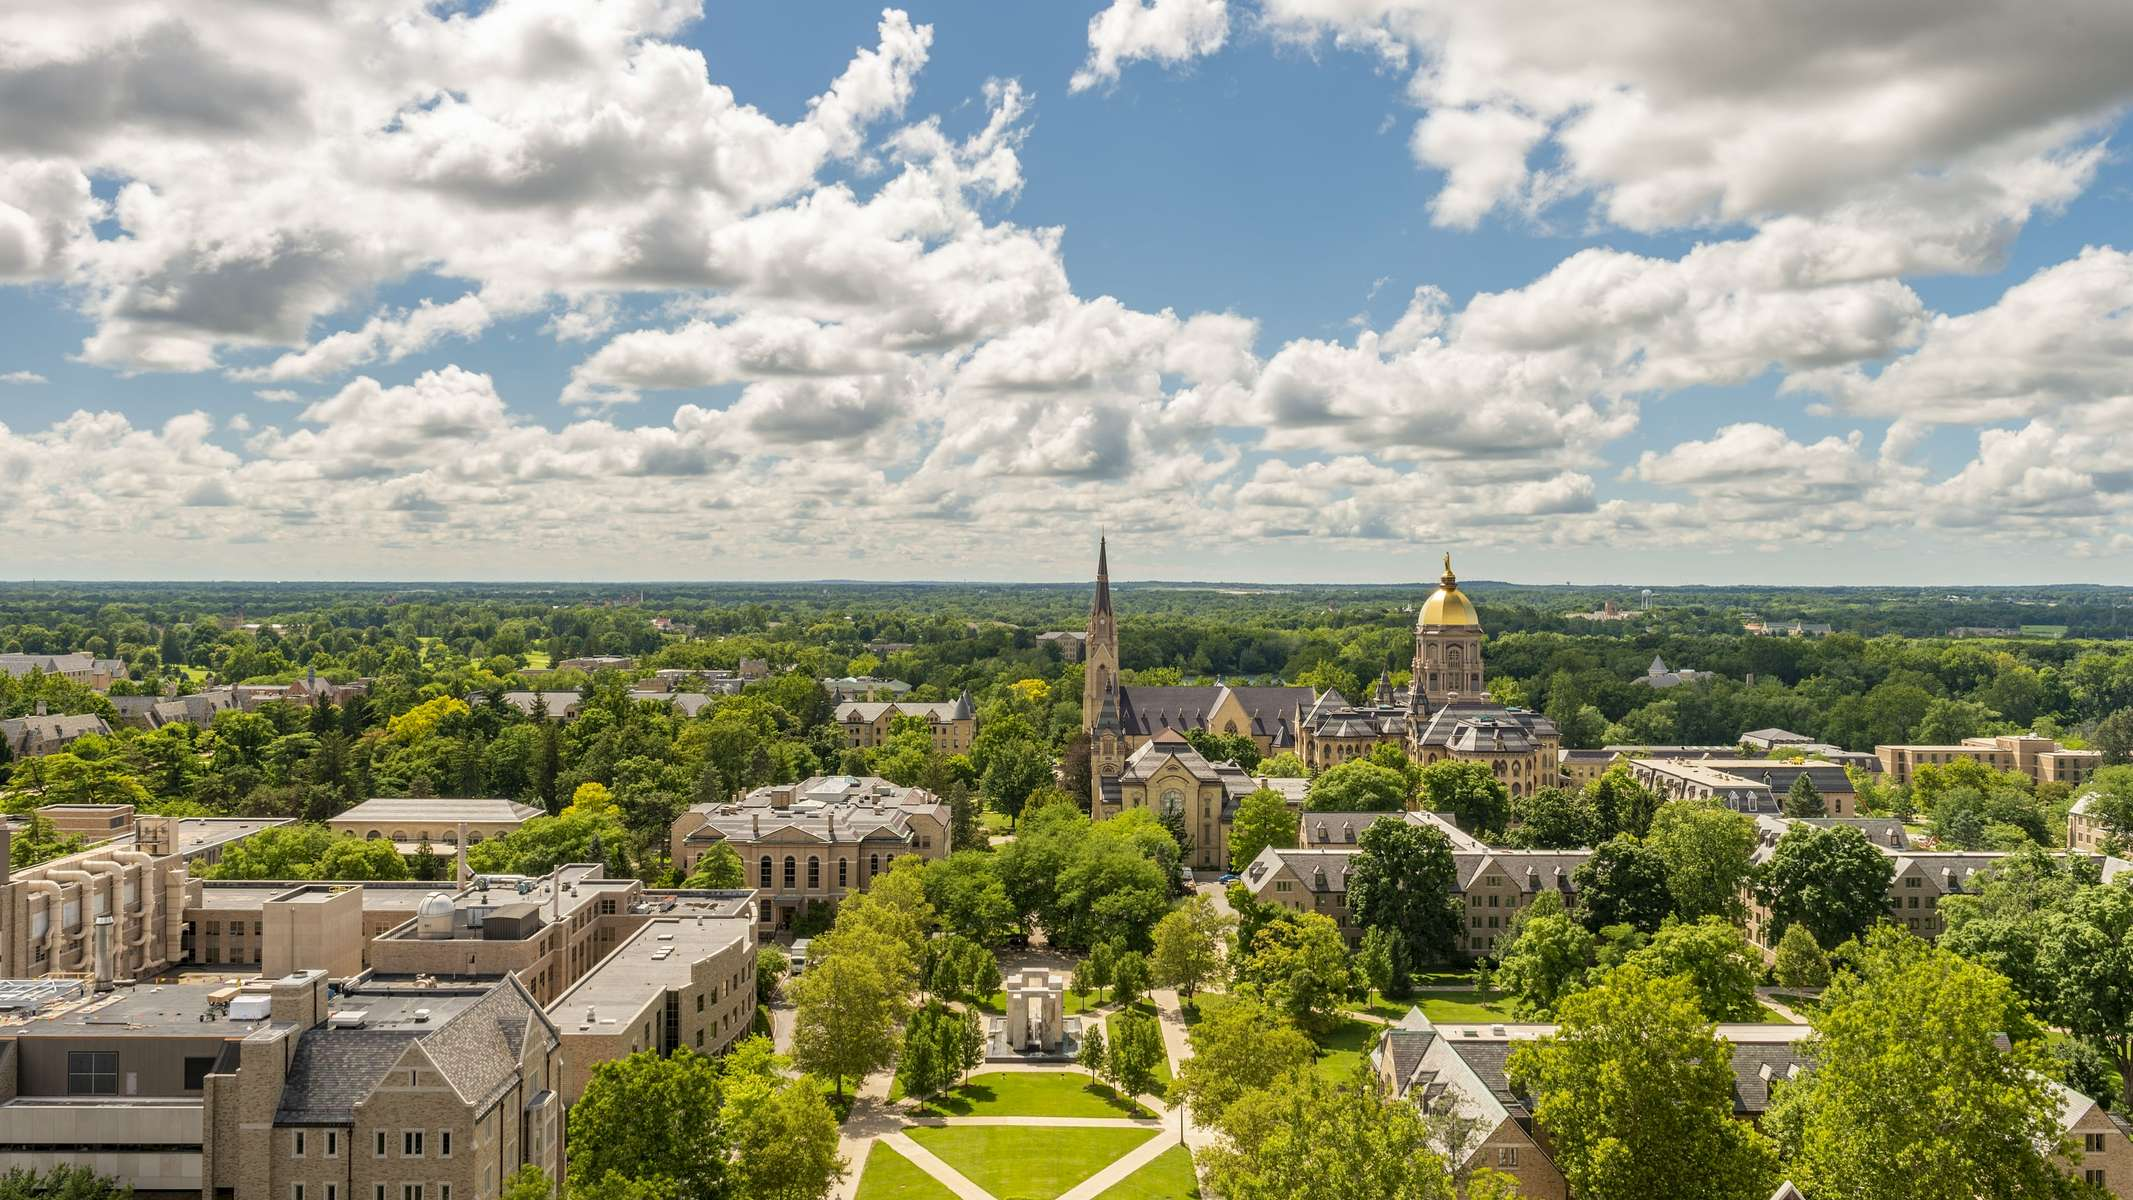 Cloud timelaspe at the University of Notre Dame.